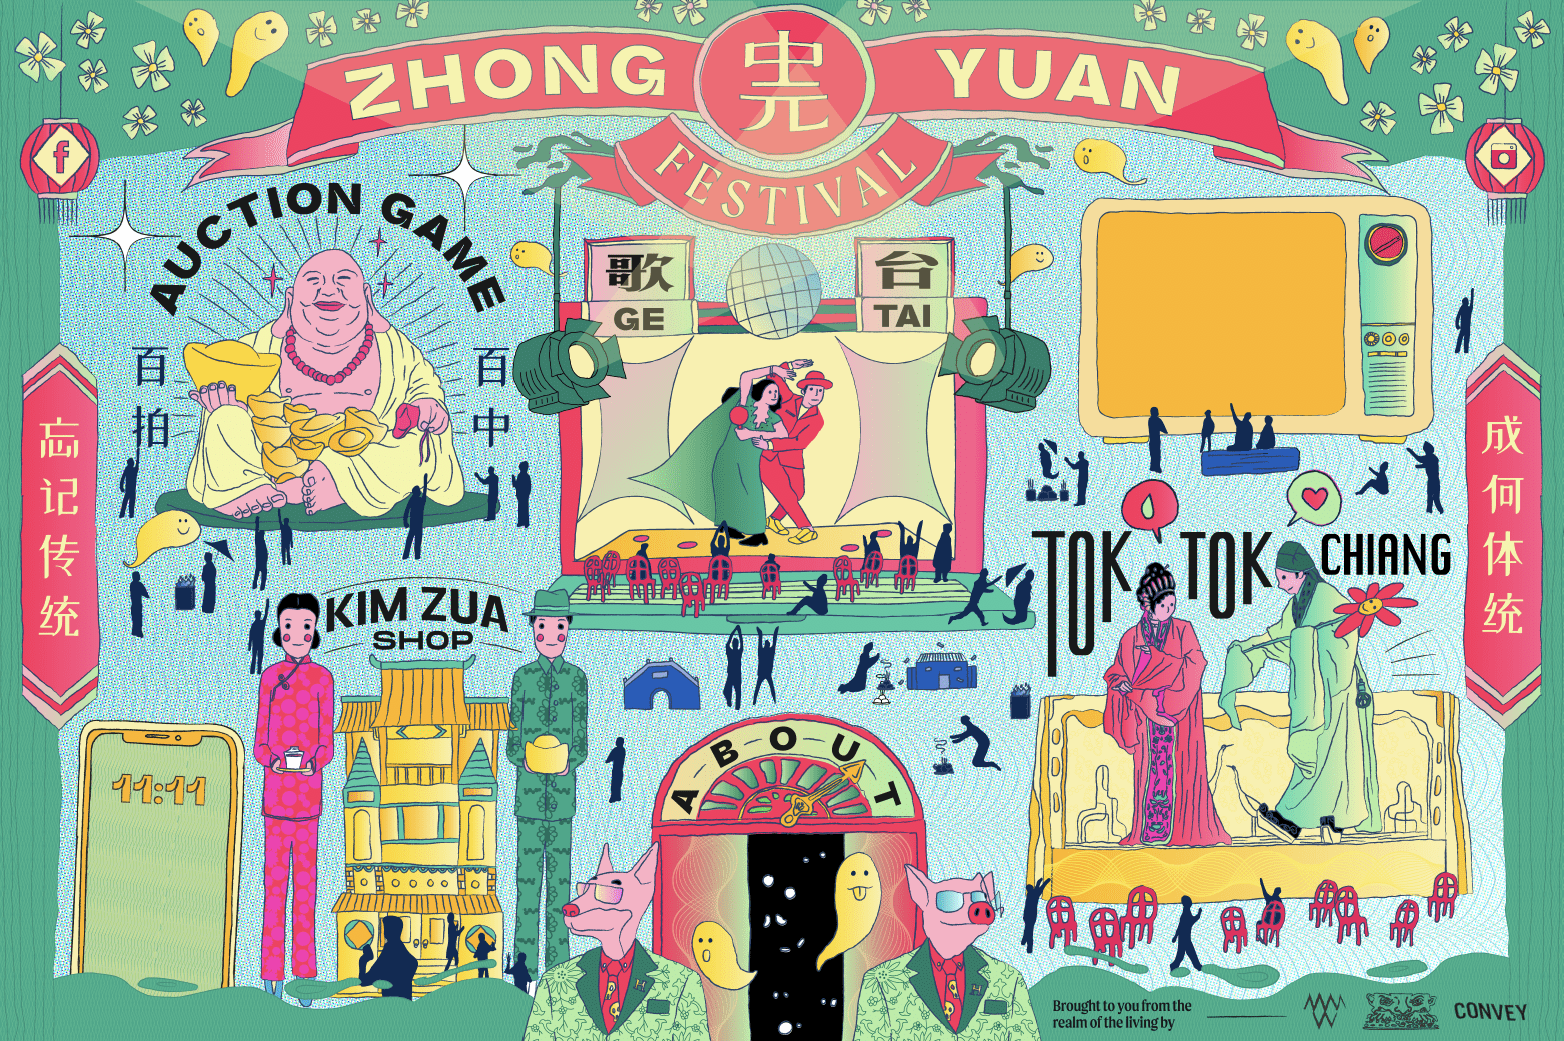 Zhong Yuan Festival goes virtual